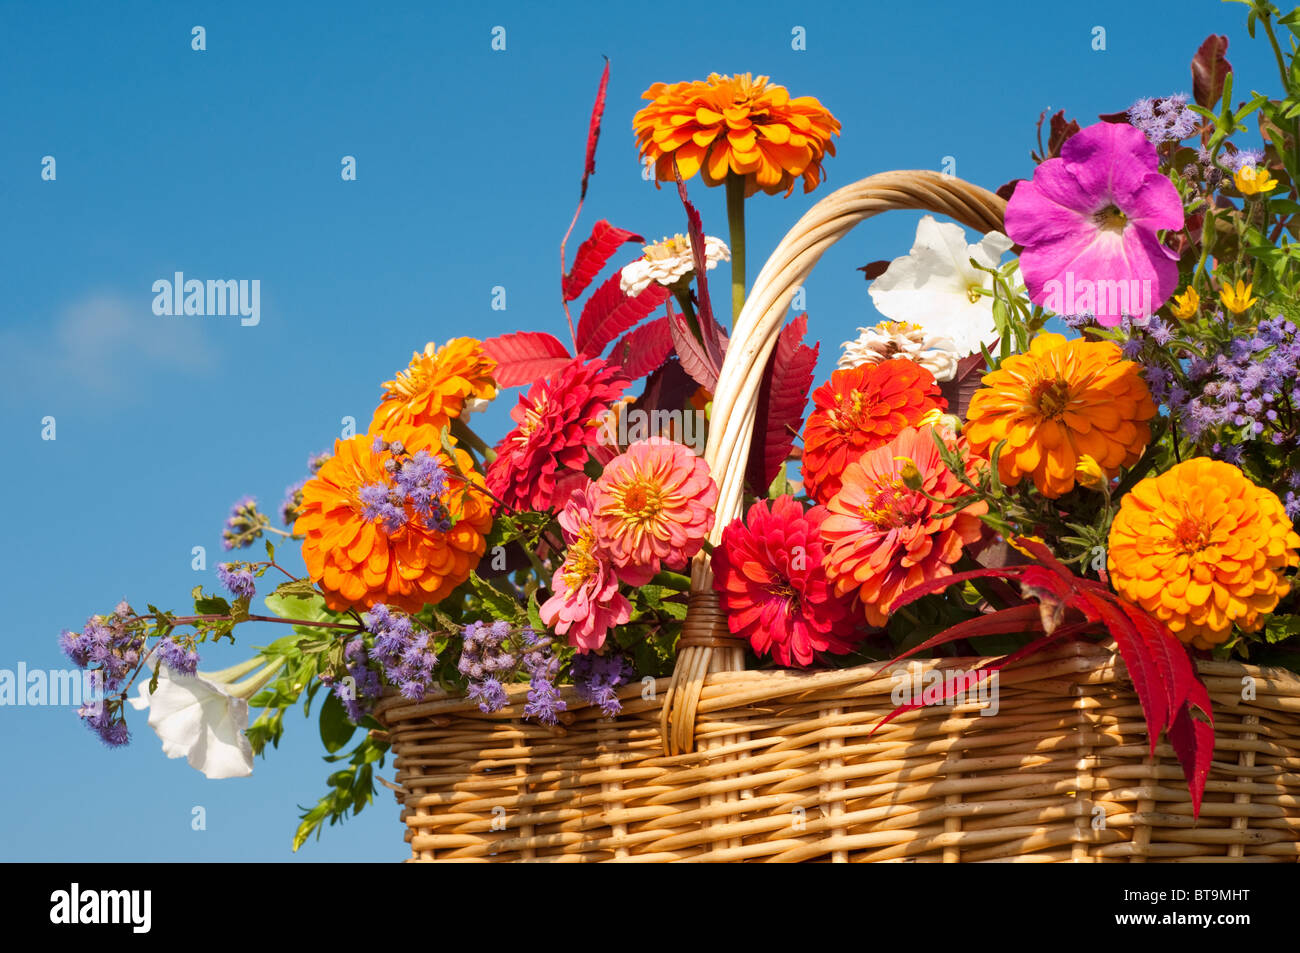 Brilliant pink flowers stock photos brilliant pink flowers stock beautiful bright fall flowers in a wicker basket against blue skies stock image izmirmasajfo